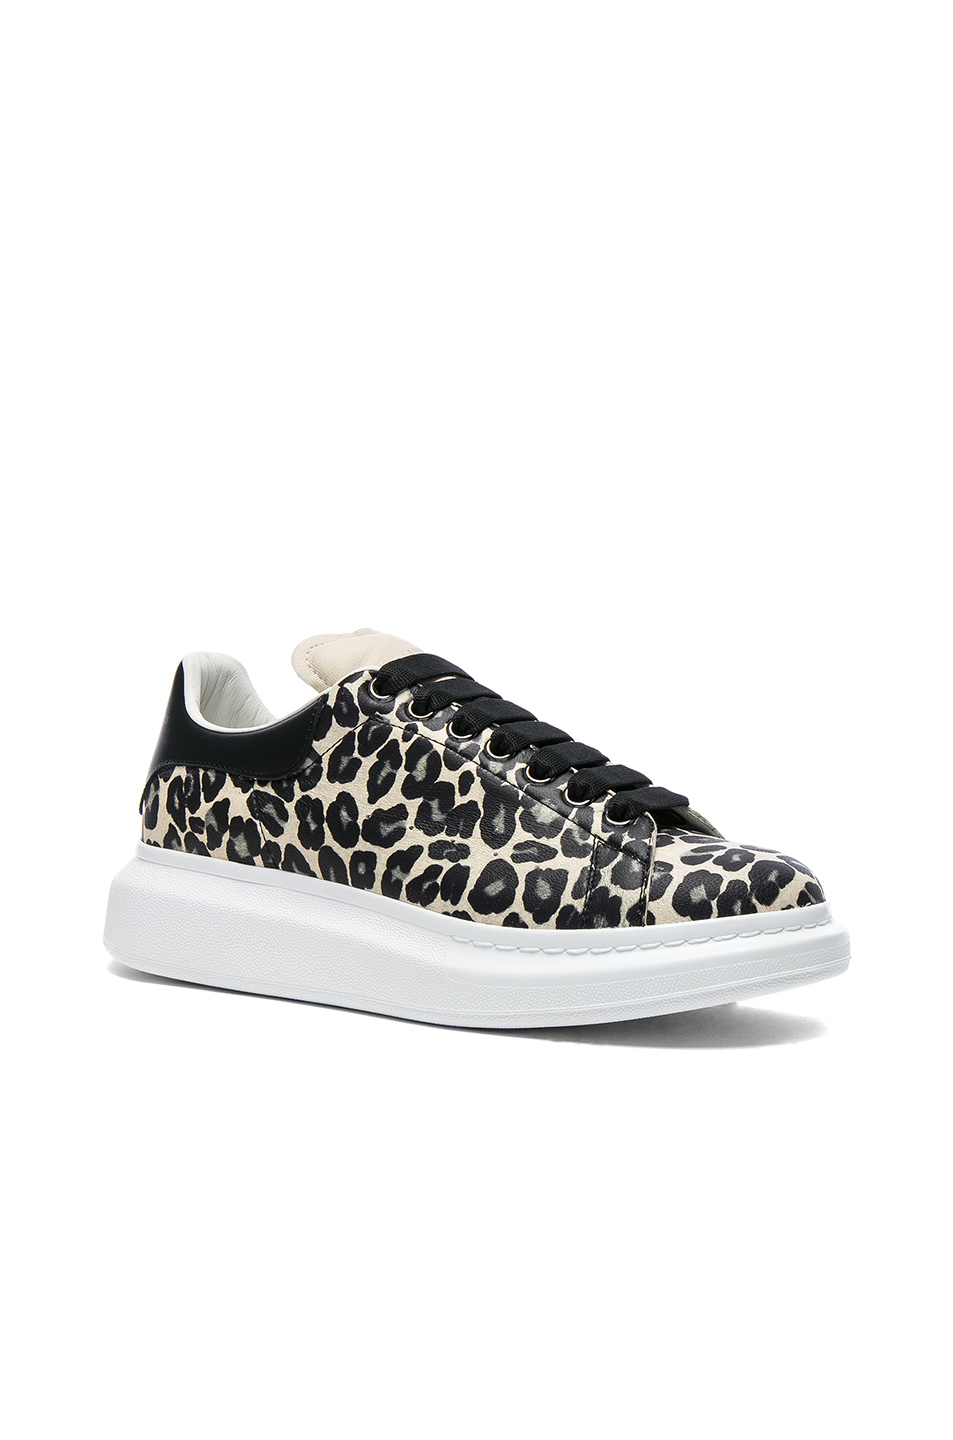 Alexander McQueen Leather Platform Sneakers in Black,Animal Print